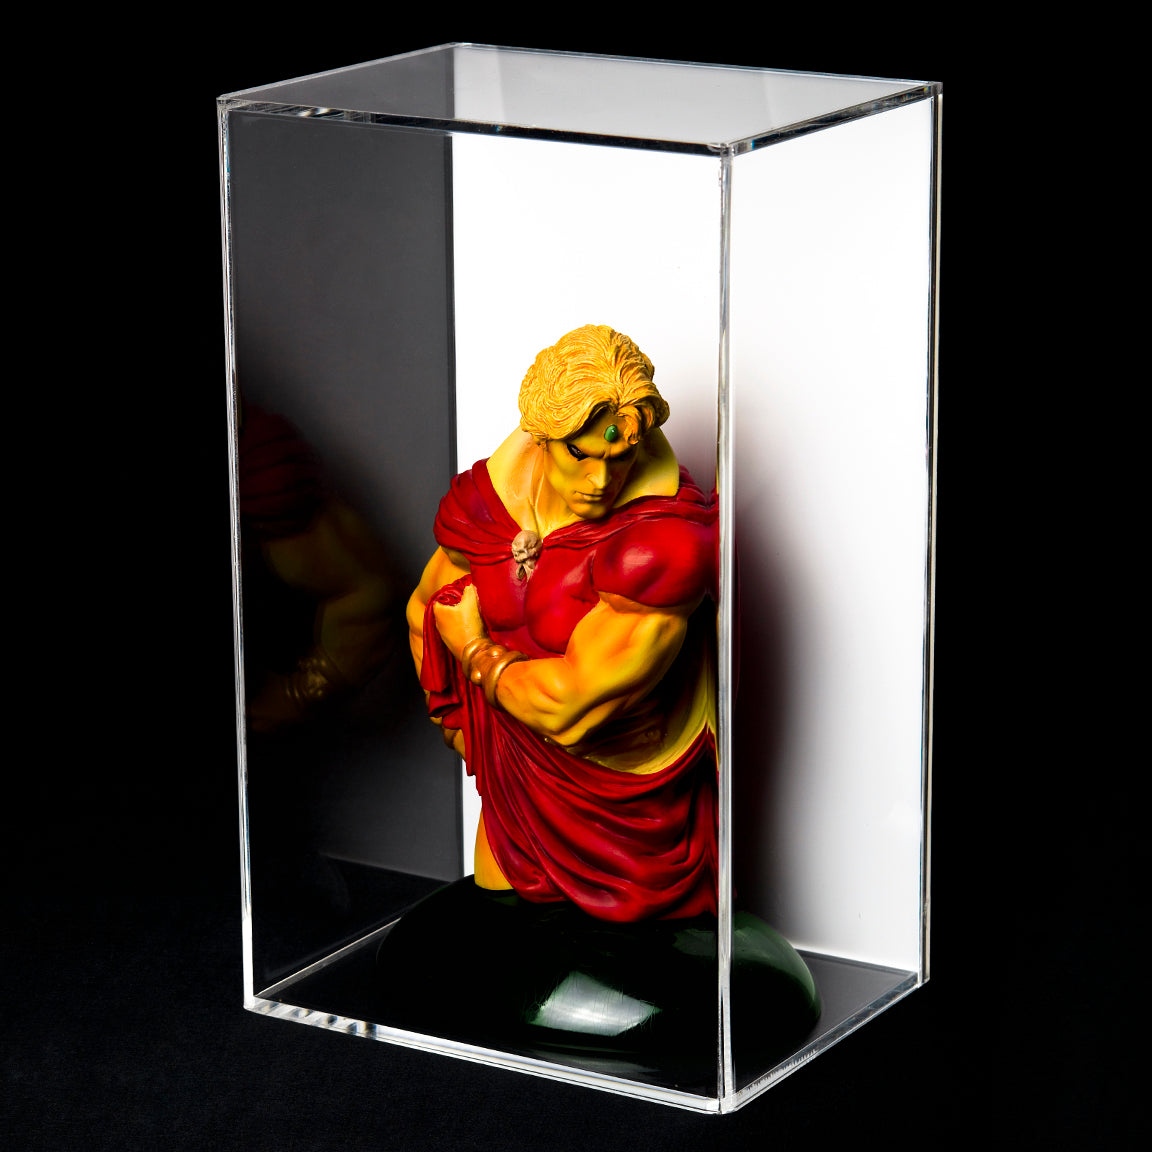 Adam Warlock displayed in our A044 case